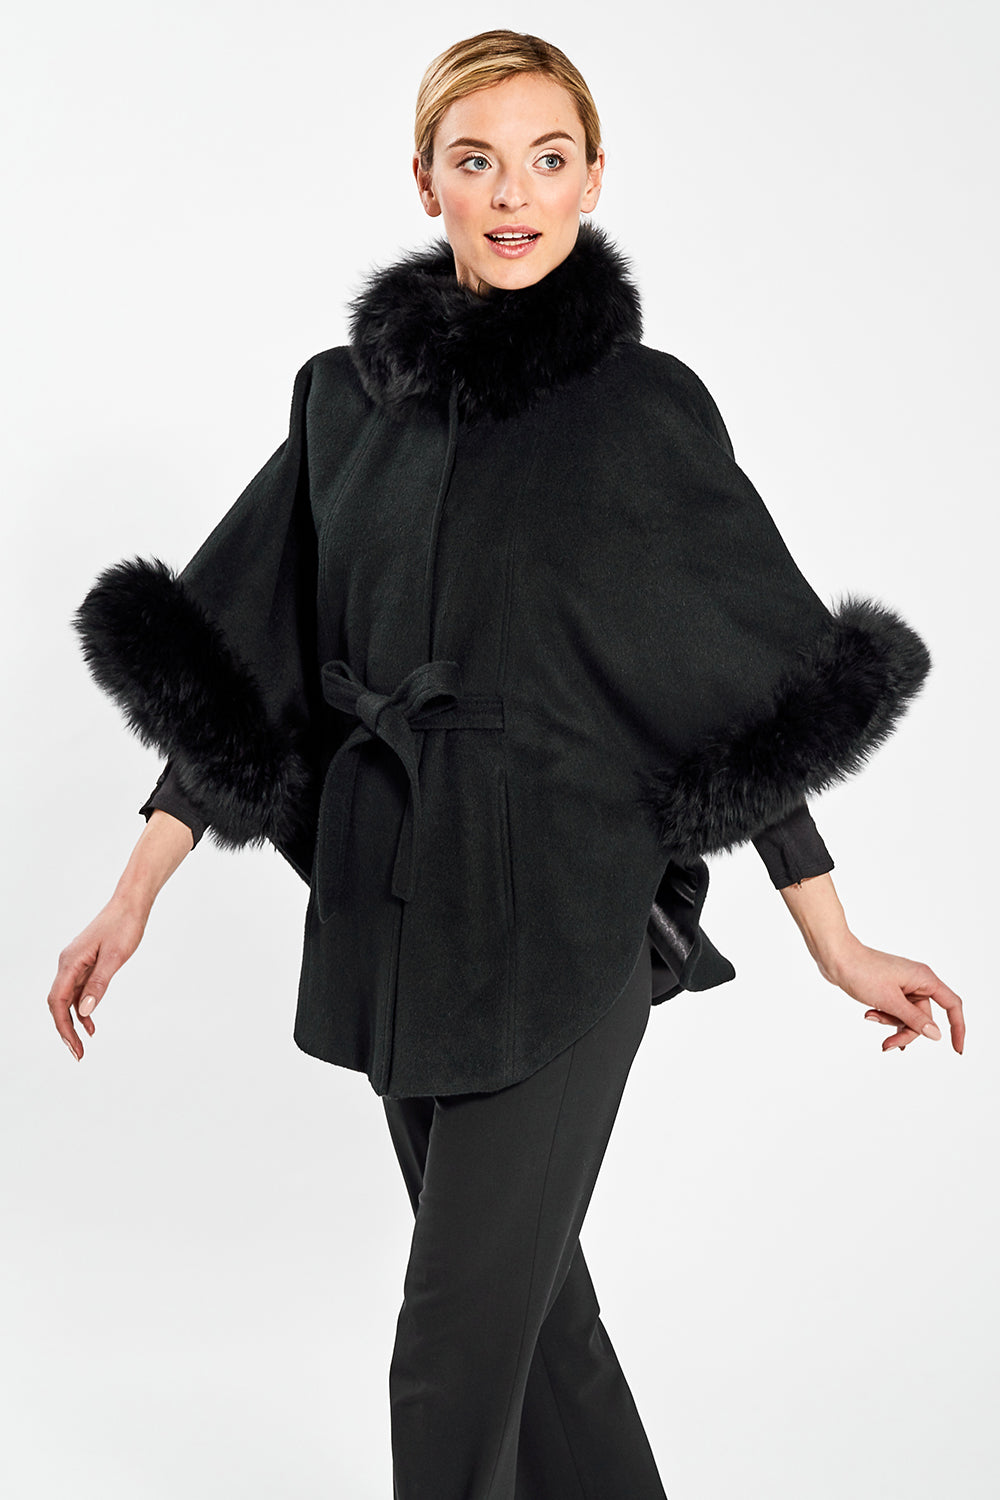 Sentaler Cape with Fur Collar and Cuffs featured in Baby Alpaca and available in Black. Seen from front.